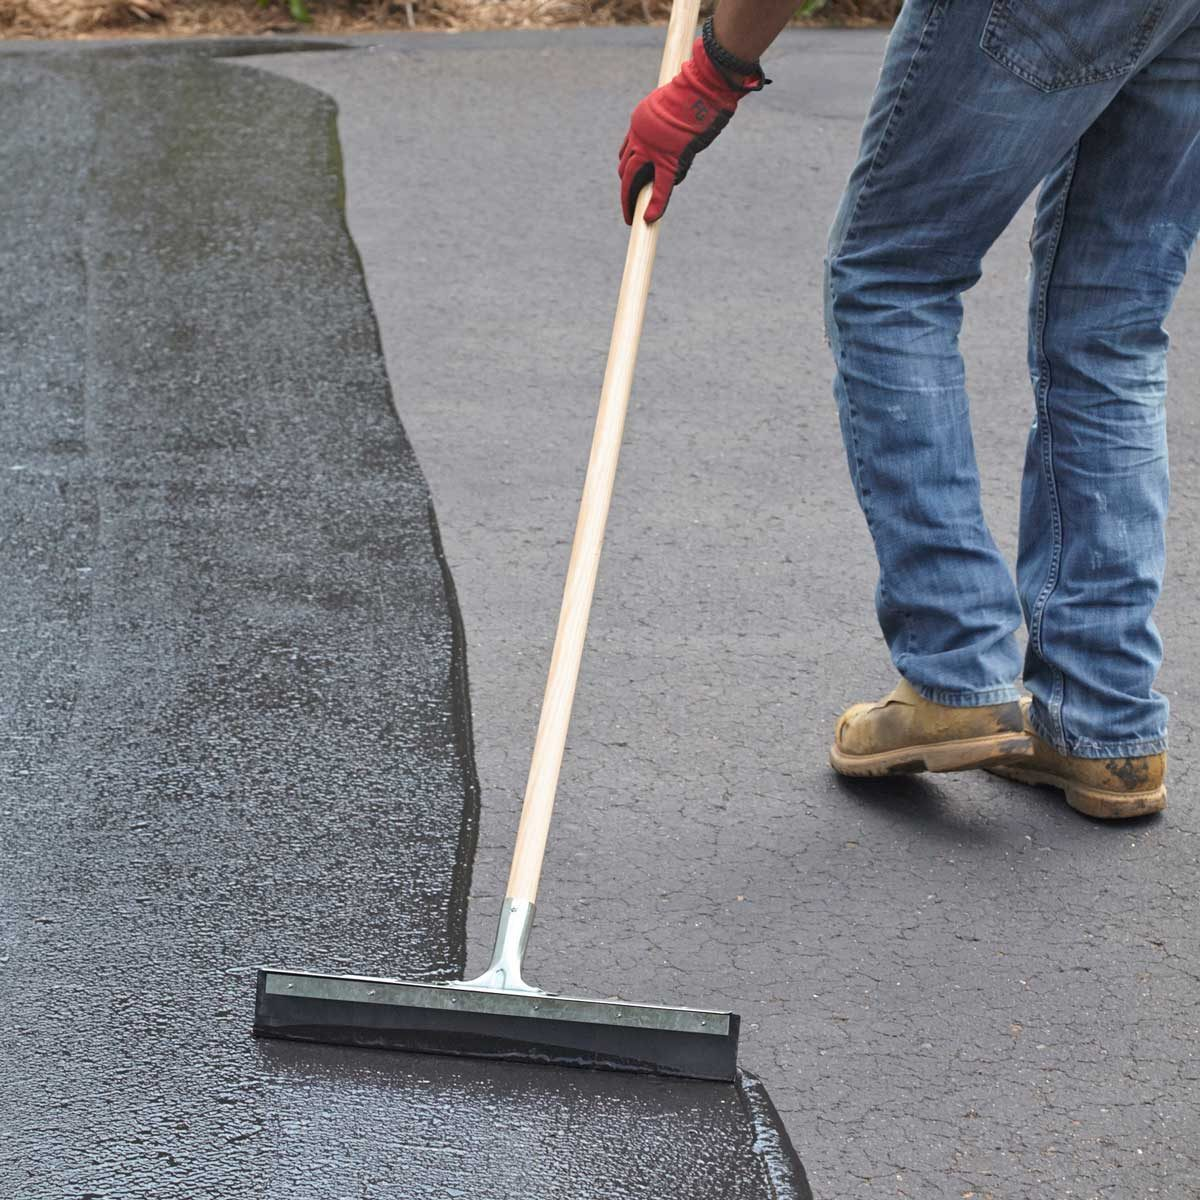 How to Seal an Asphalt Driveway | Family Handyman